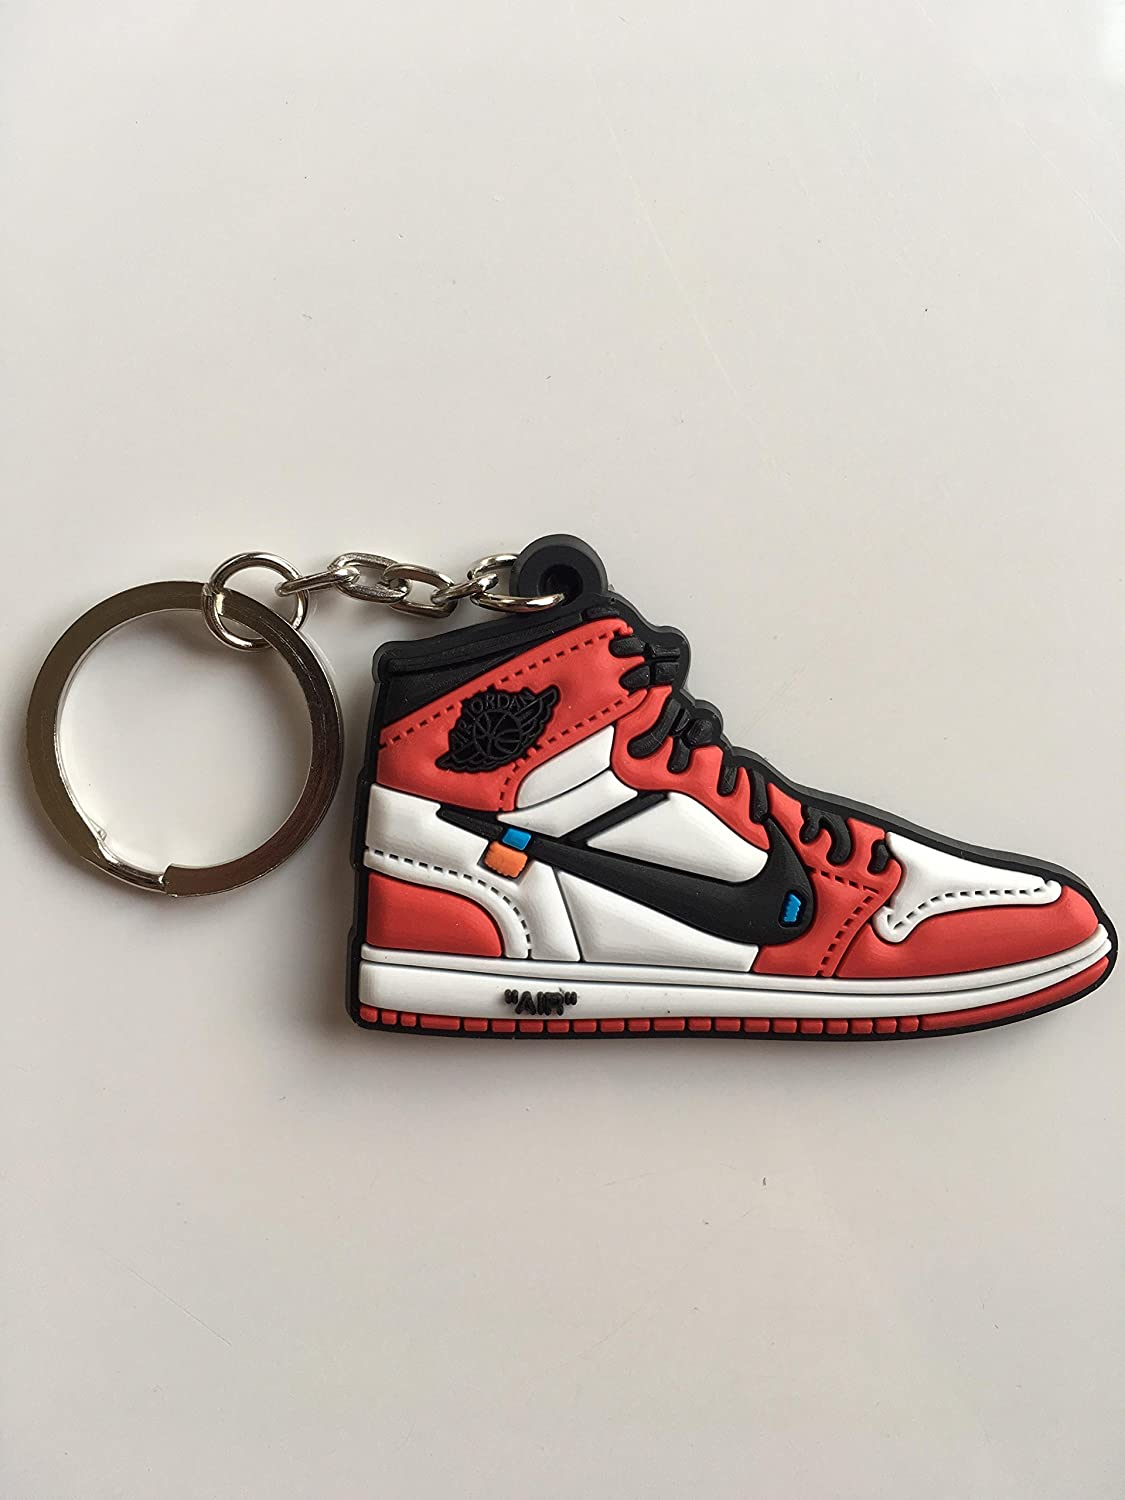 Amazon.com: Jordan Retro 1 OG X blanco roto Chicago Sneaker ...